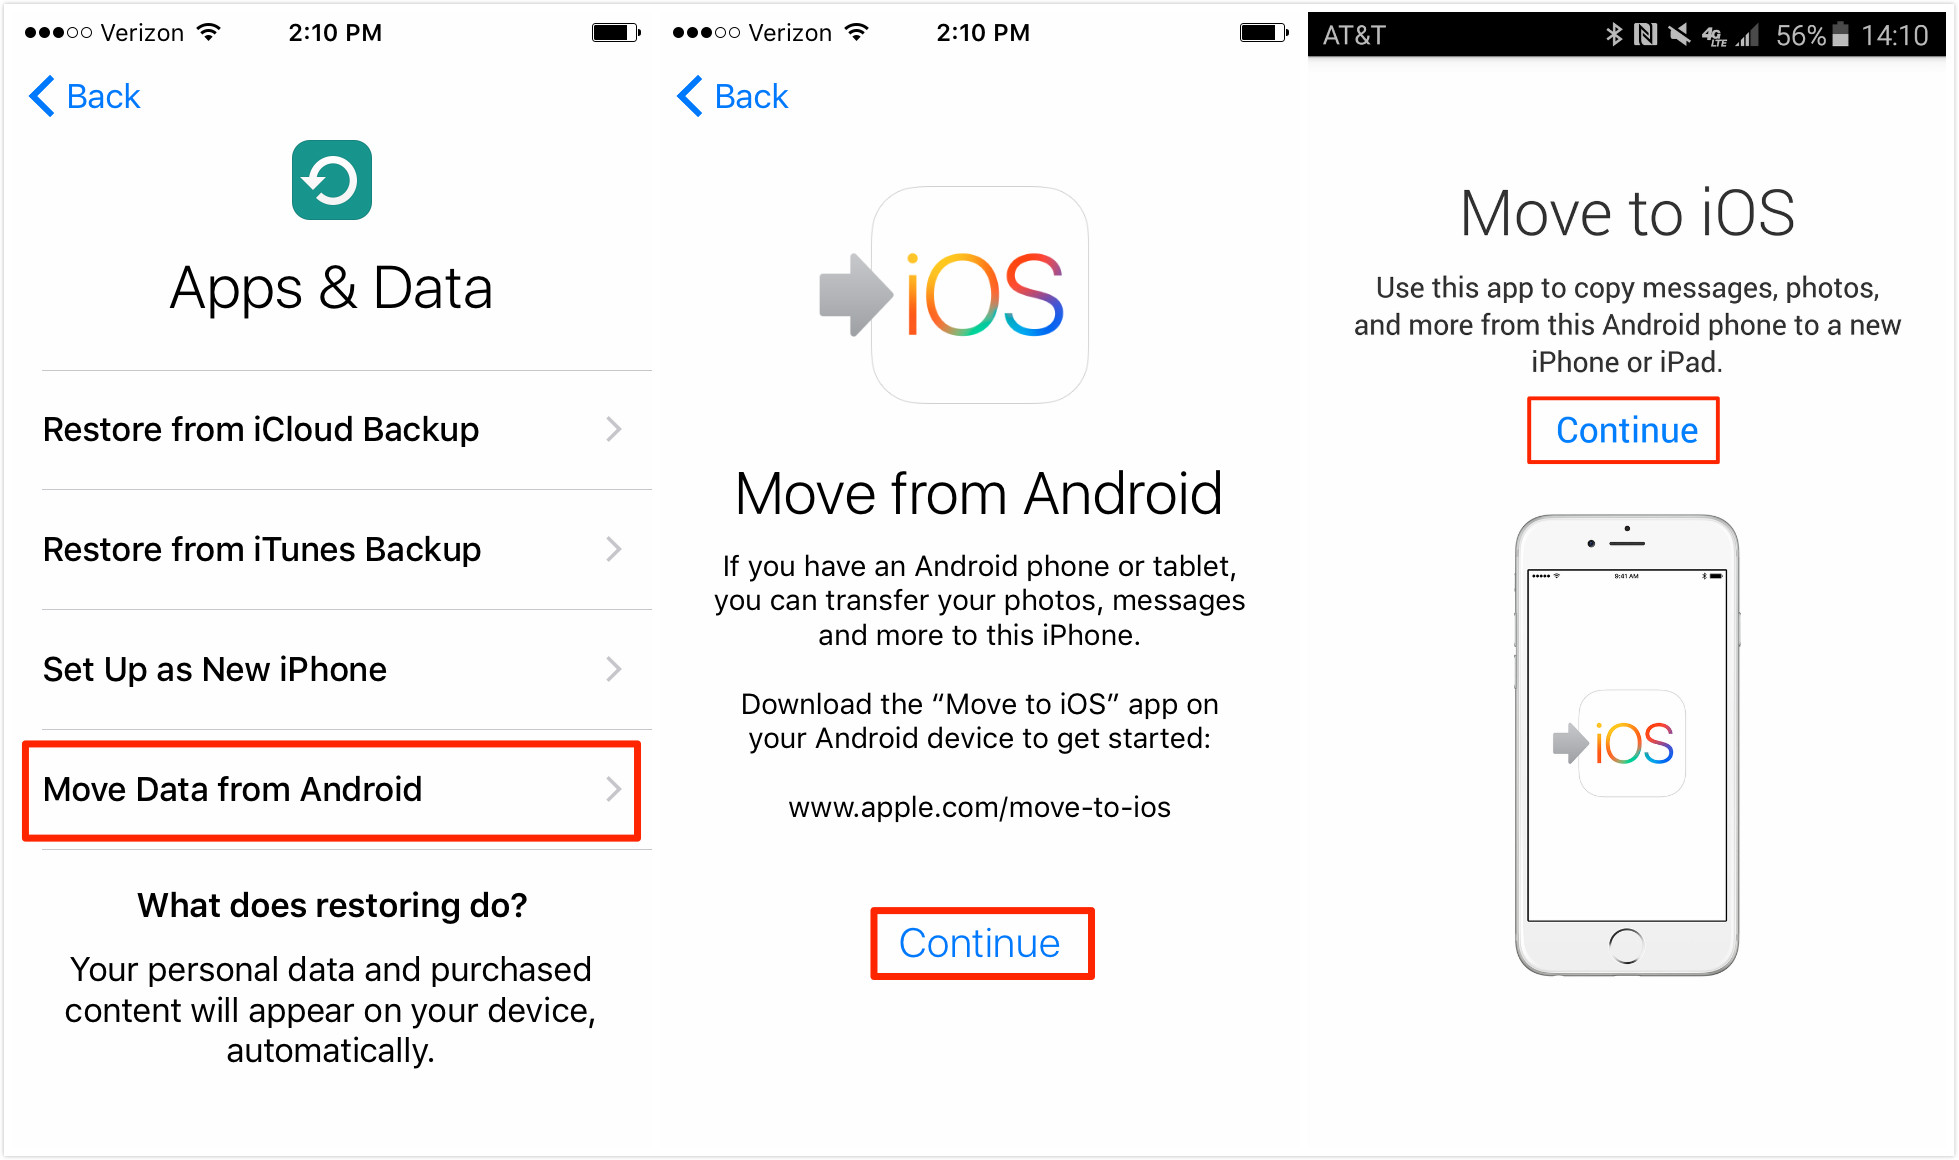 How to Use Move to iOS on iPhone/iPad/iPod – Screen Overview